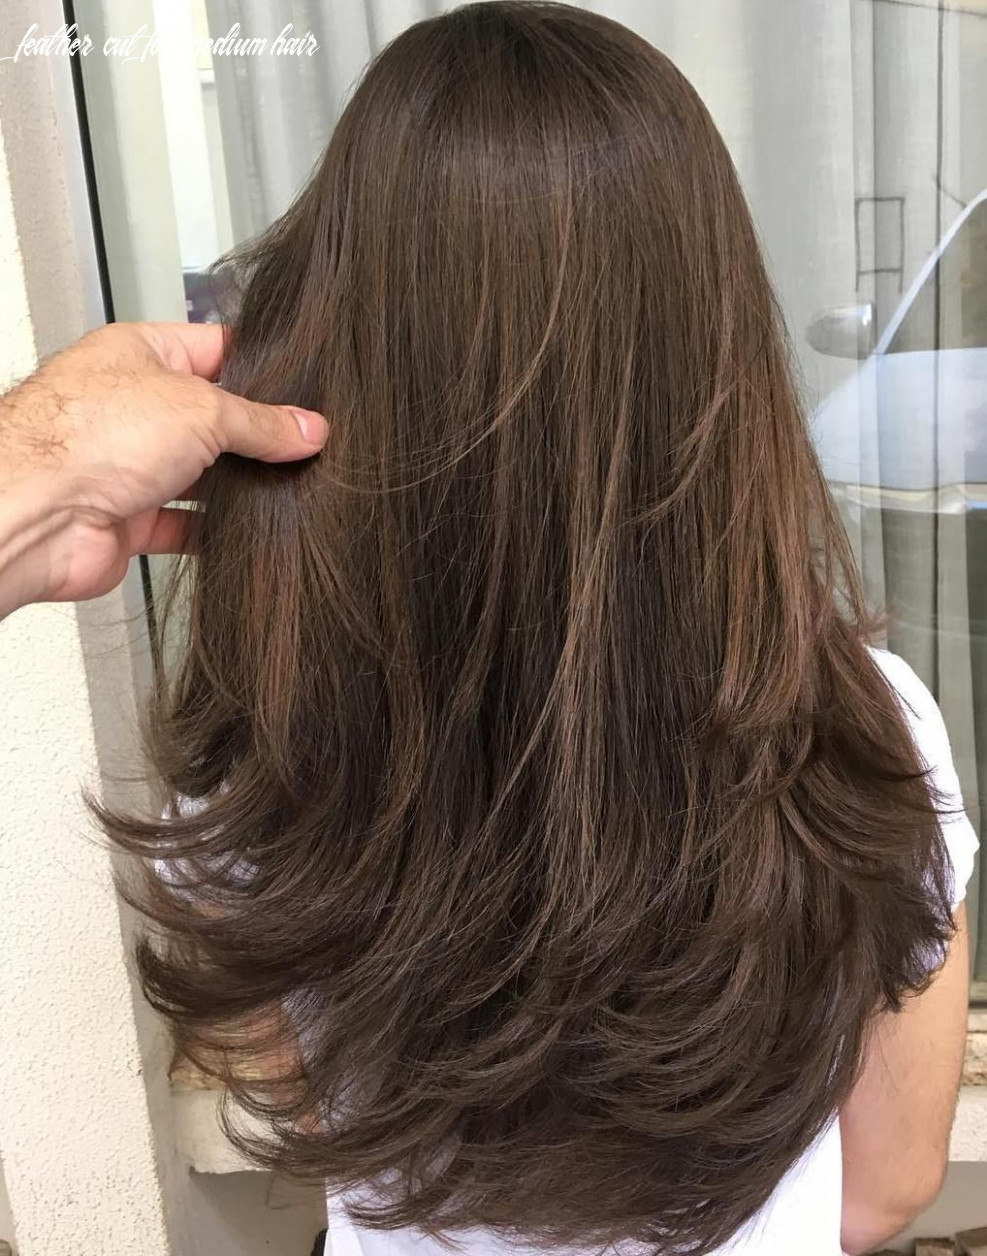 Pin on women hairstyles feather cut for medium hair